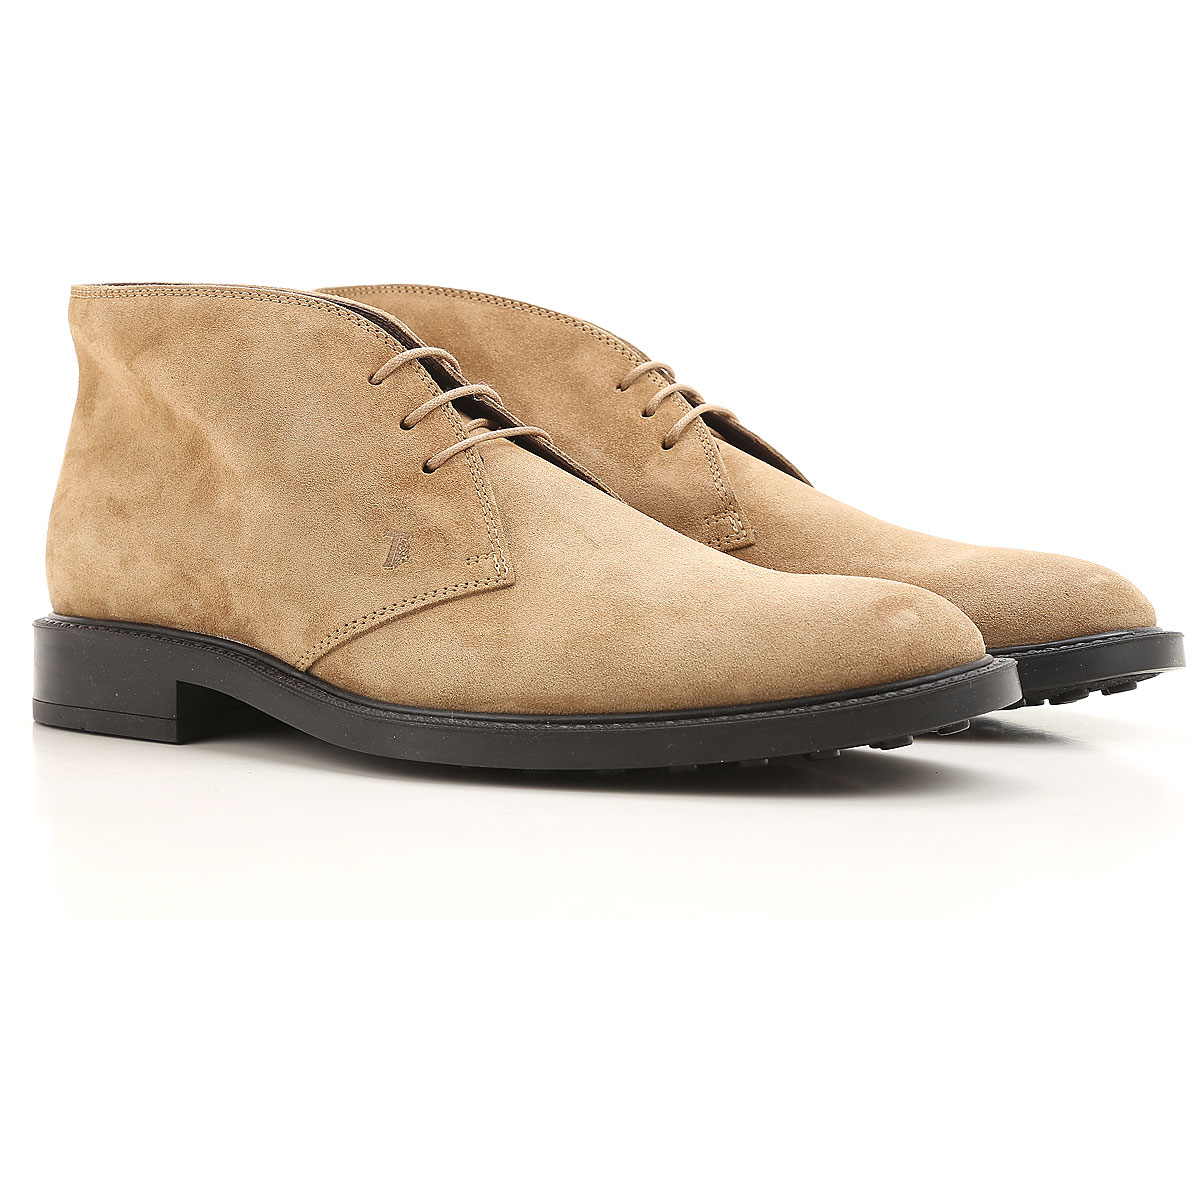 Tods Boots for Men, Booties, Taupe, suede, 2019, 12 13